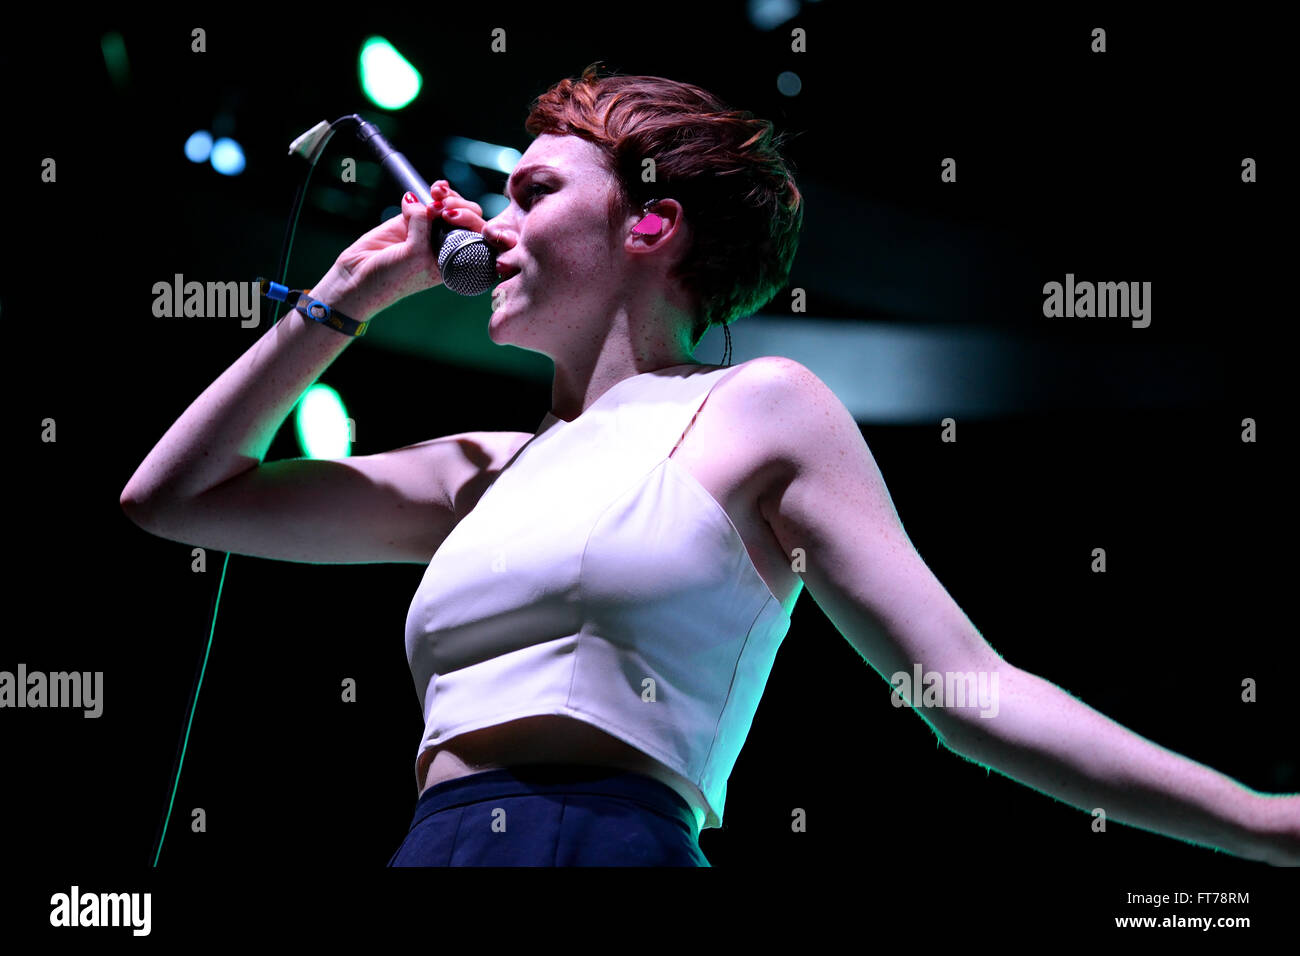 BENICASSIM, SPAIN - JULY 20: Chloe Howl (British singer nominated for the BBC Sound of 2014) performance at FIB - Stock Image